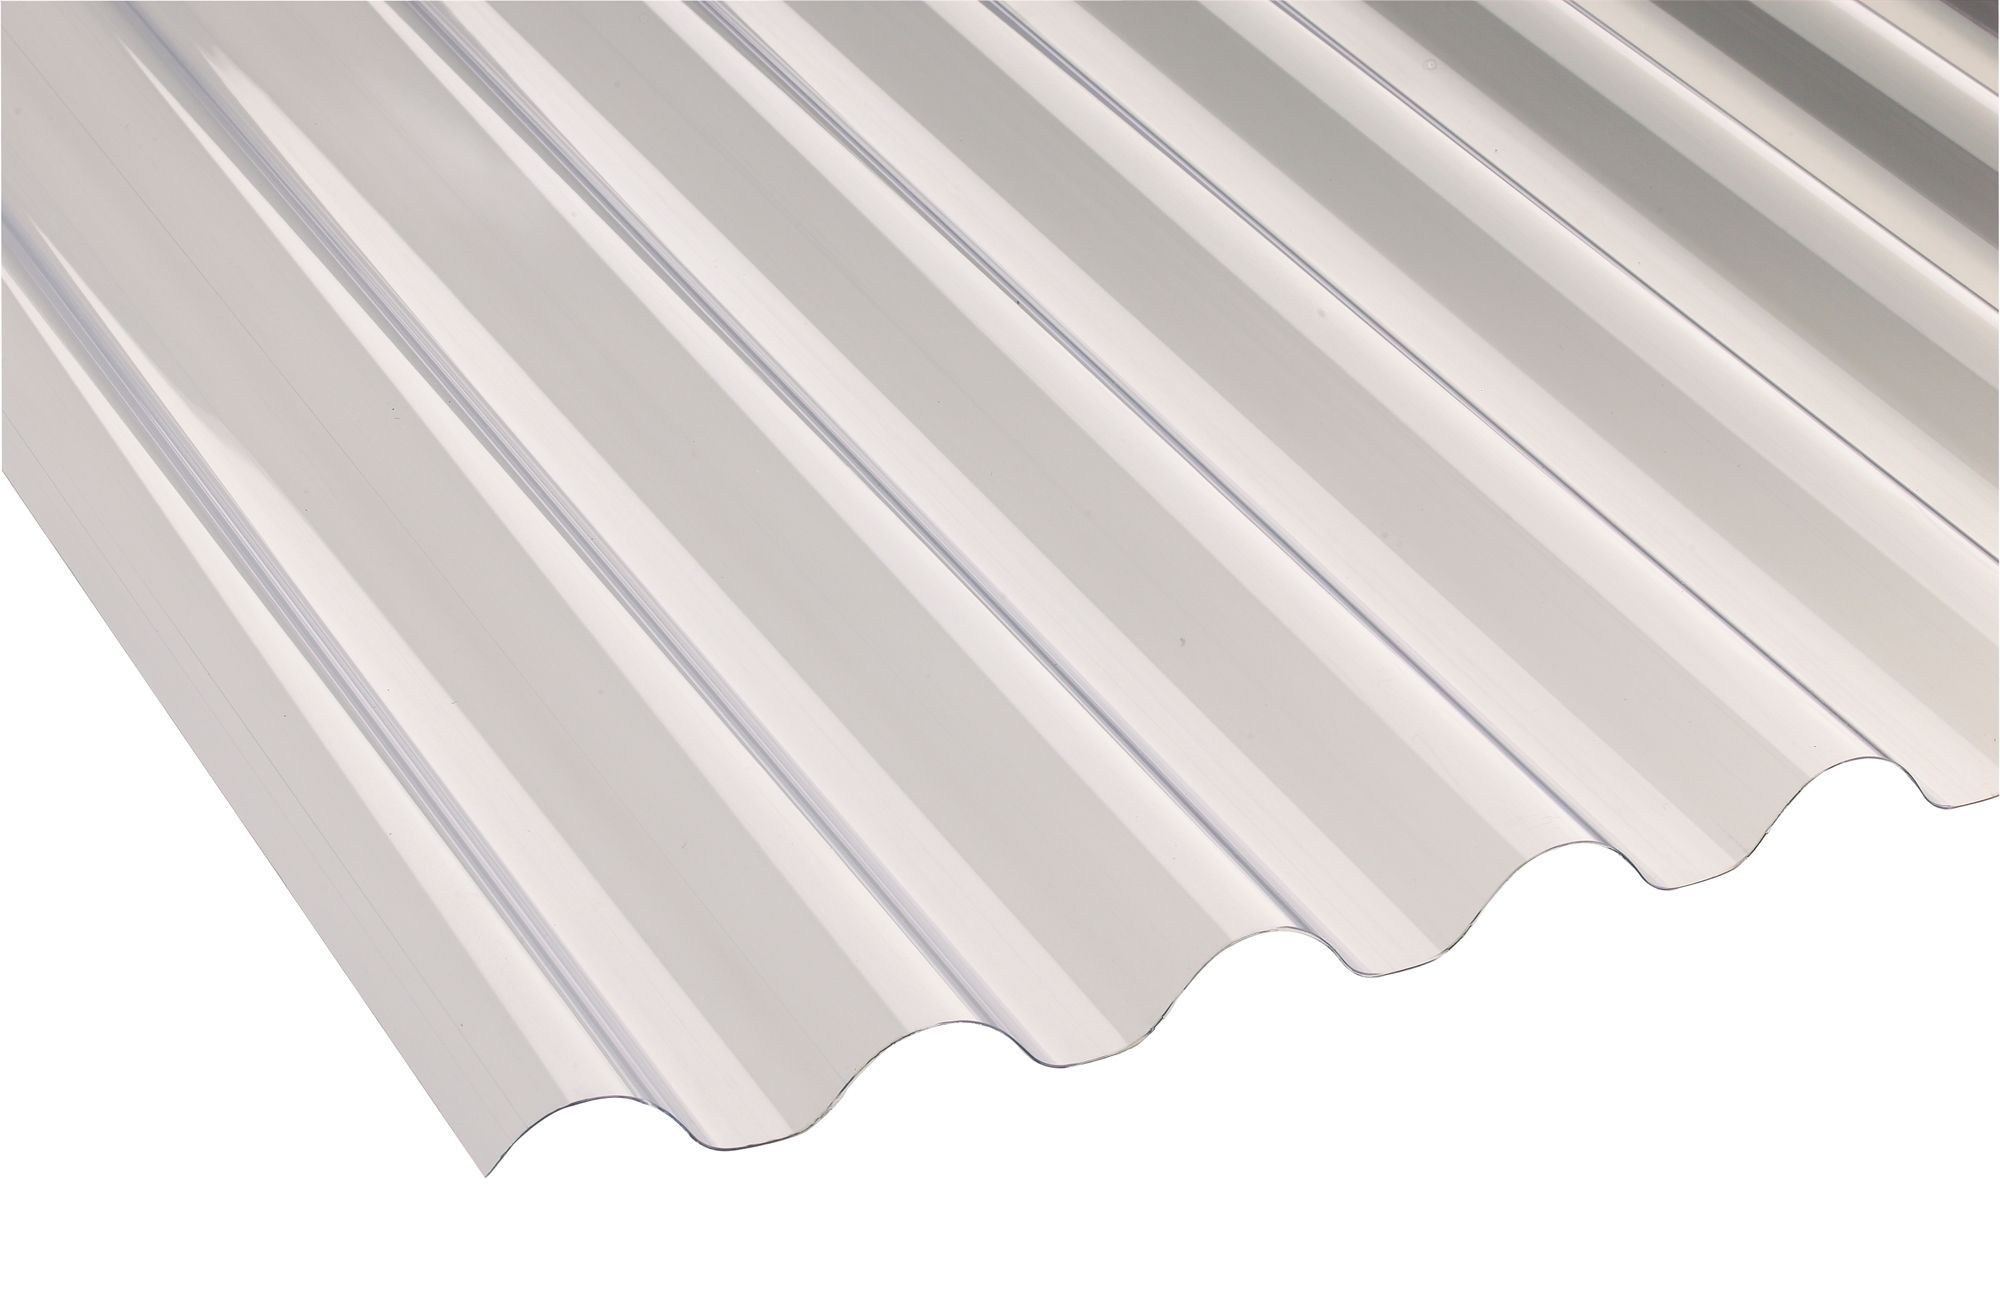 Vinyl Roofing Sheets : Translucent pvc roofing sheet m mm departments